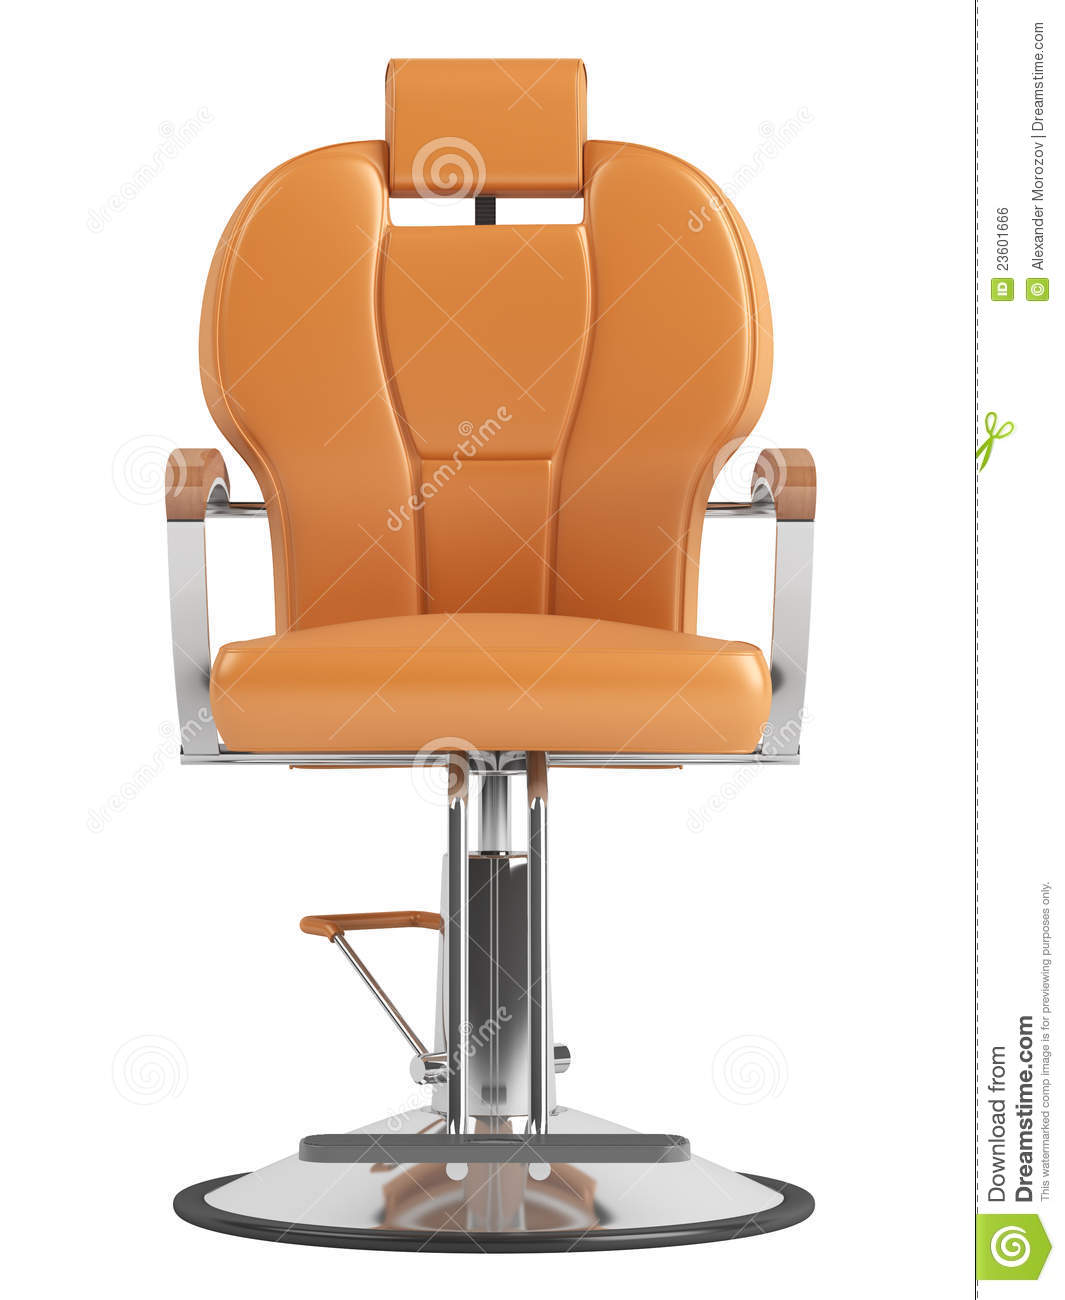 Orange hairdressing salon chair royalty free stock image for Hairdressing chairs